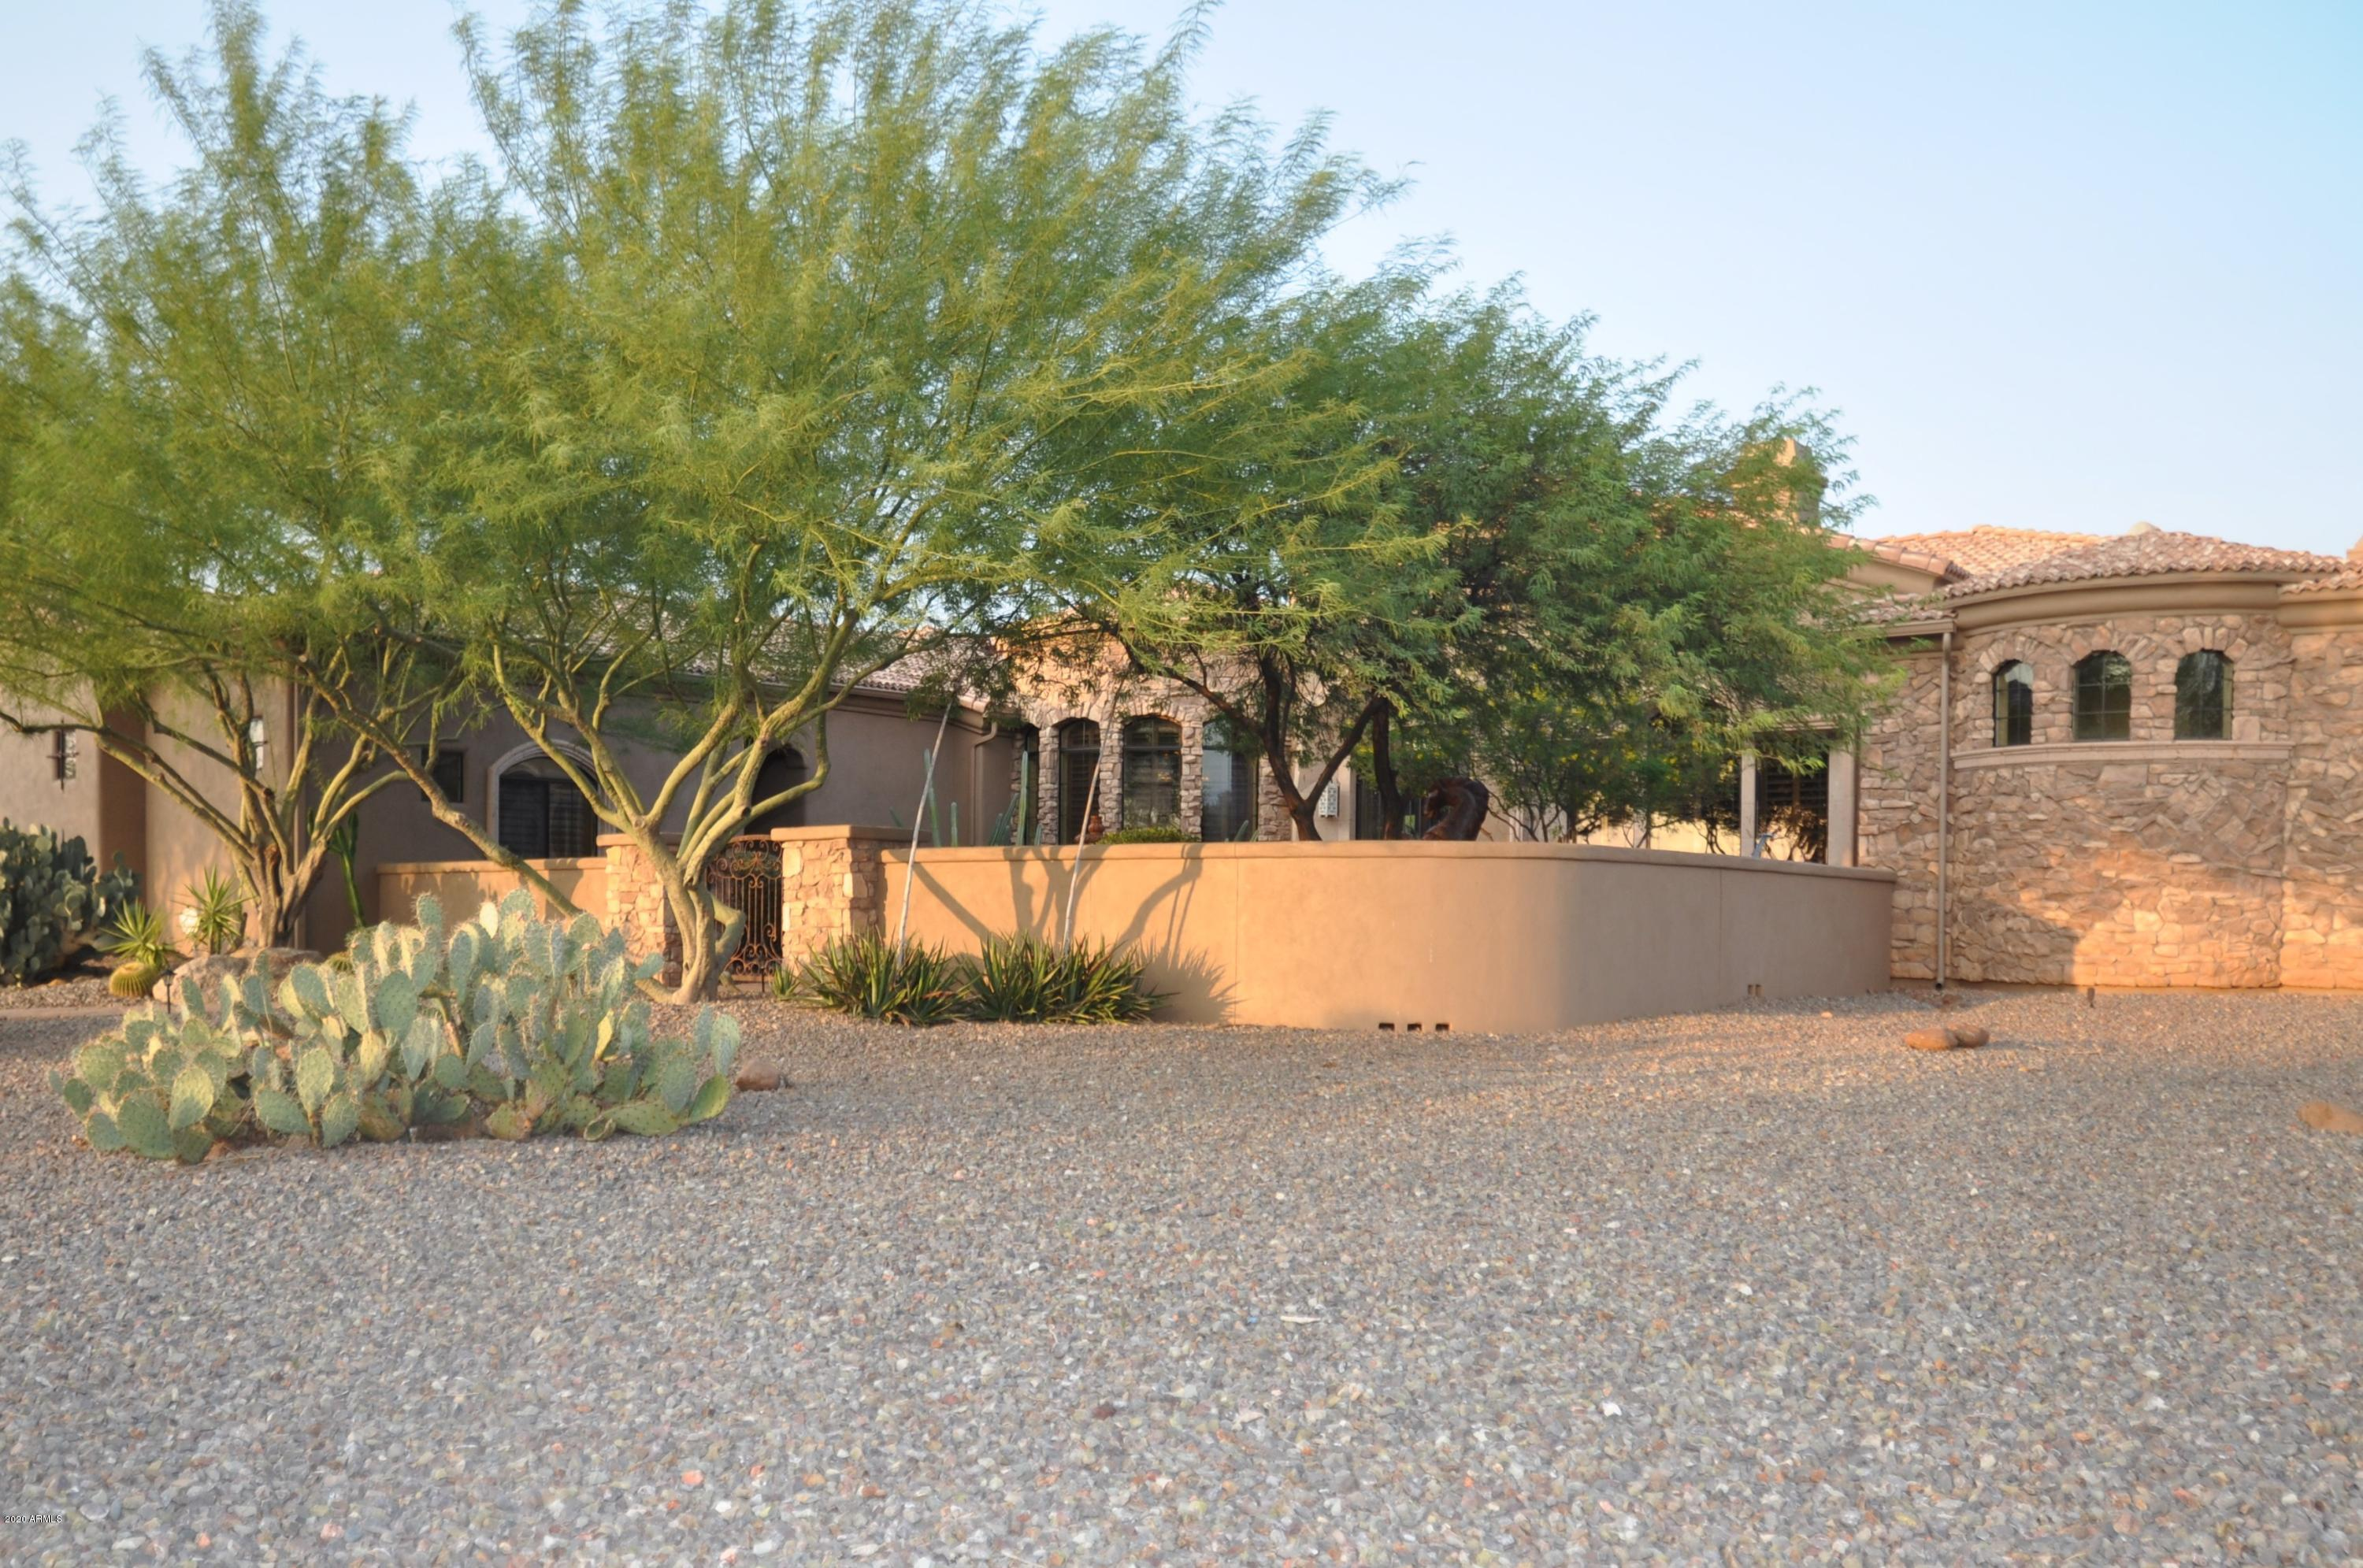 MLS 6134601 35155 N 45TH Street, Cave Creek, AZ 85331 Cave Creek AZ Private Spa